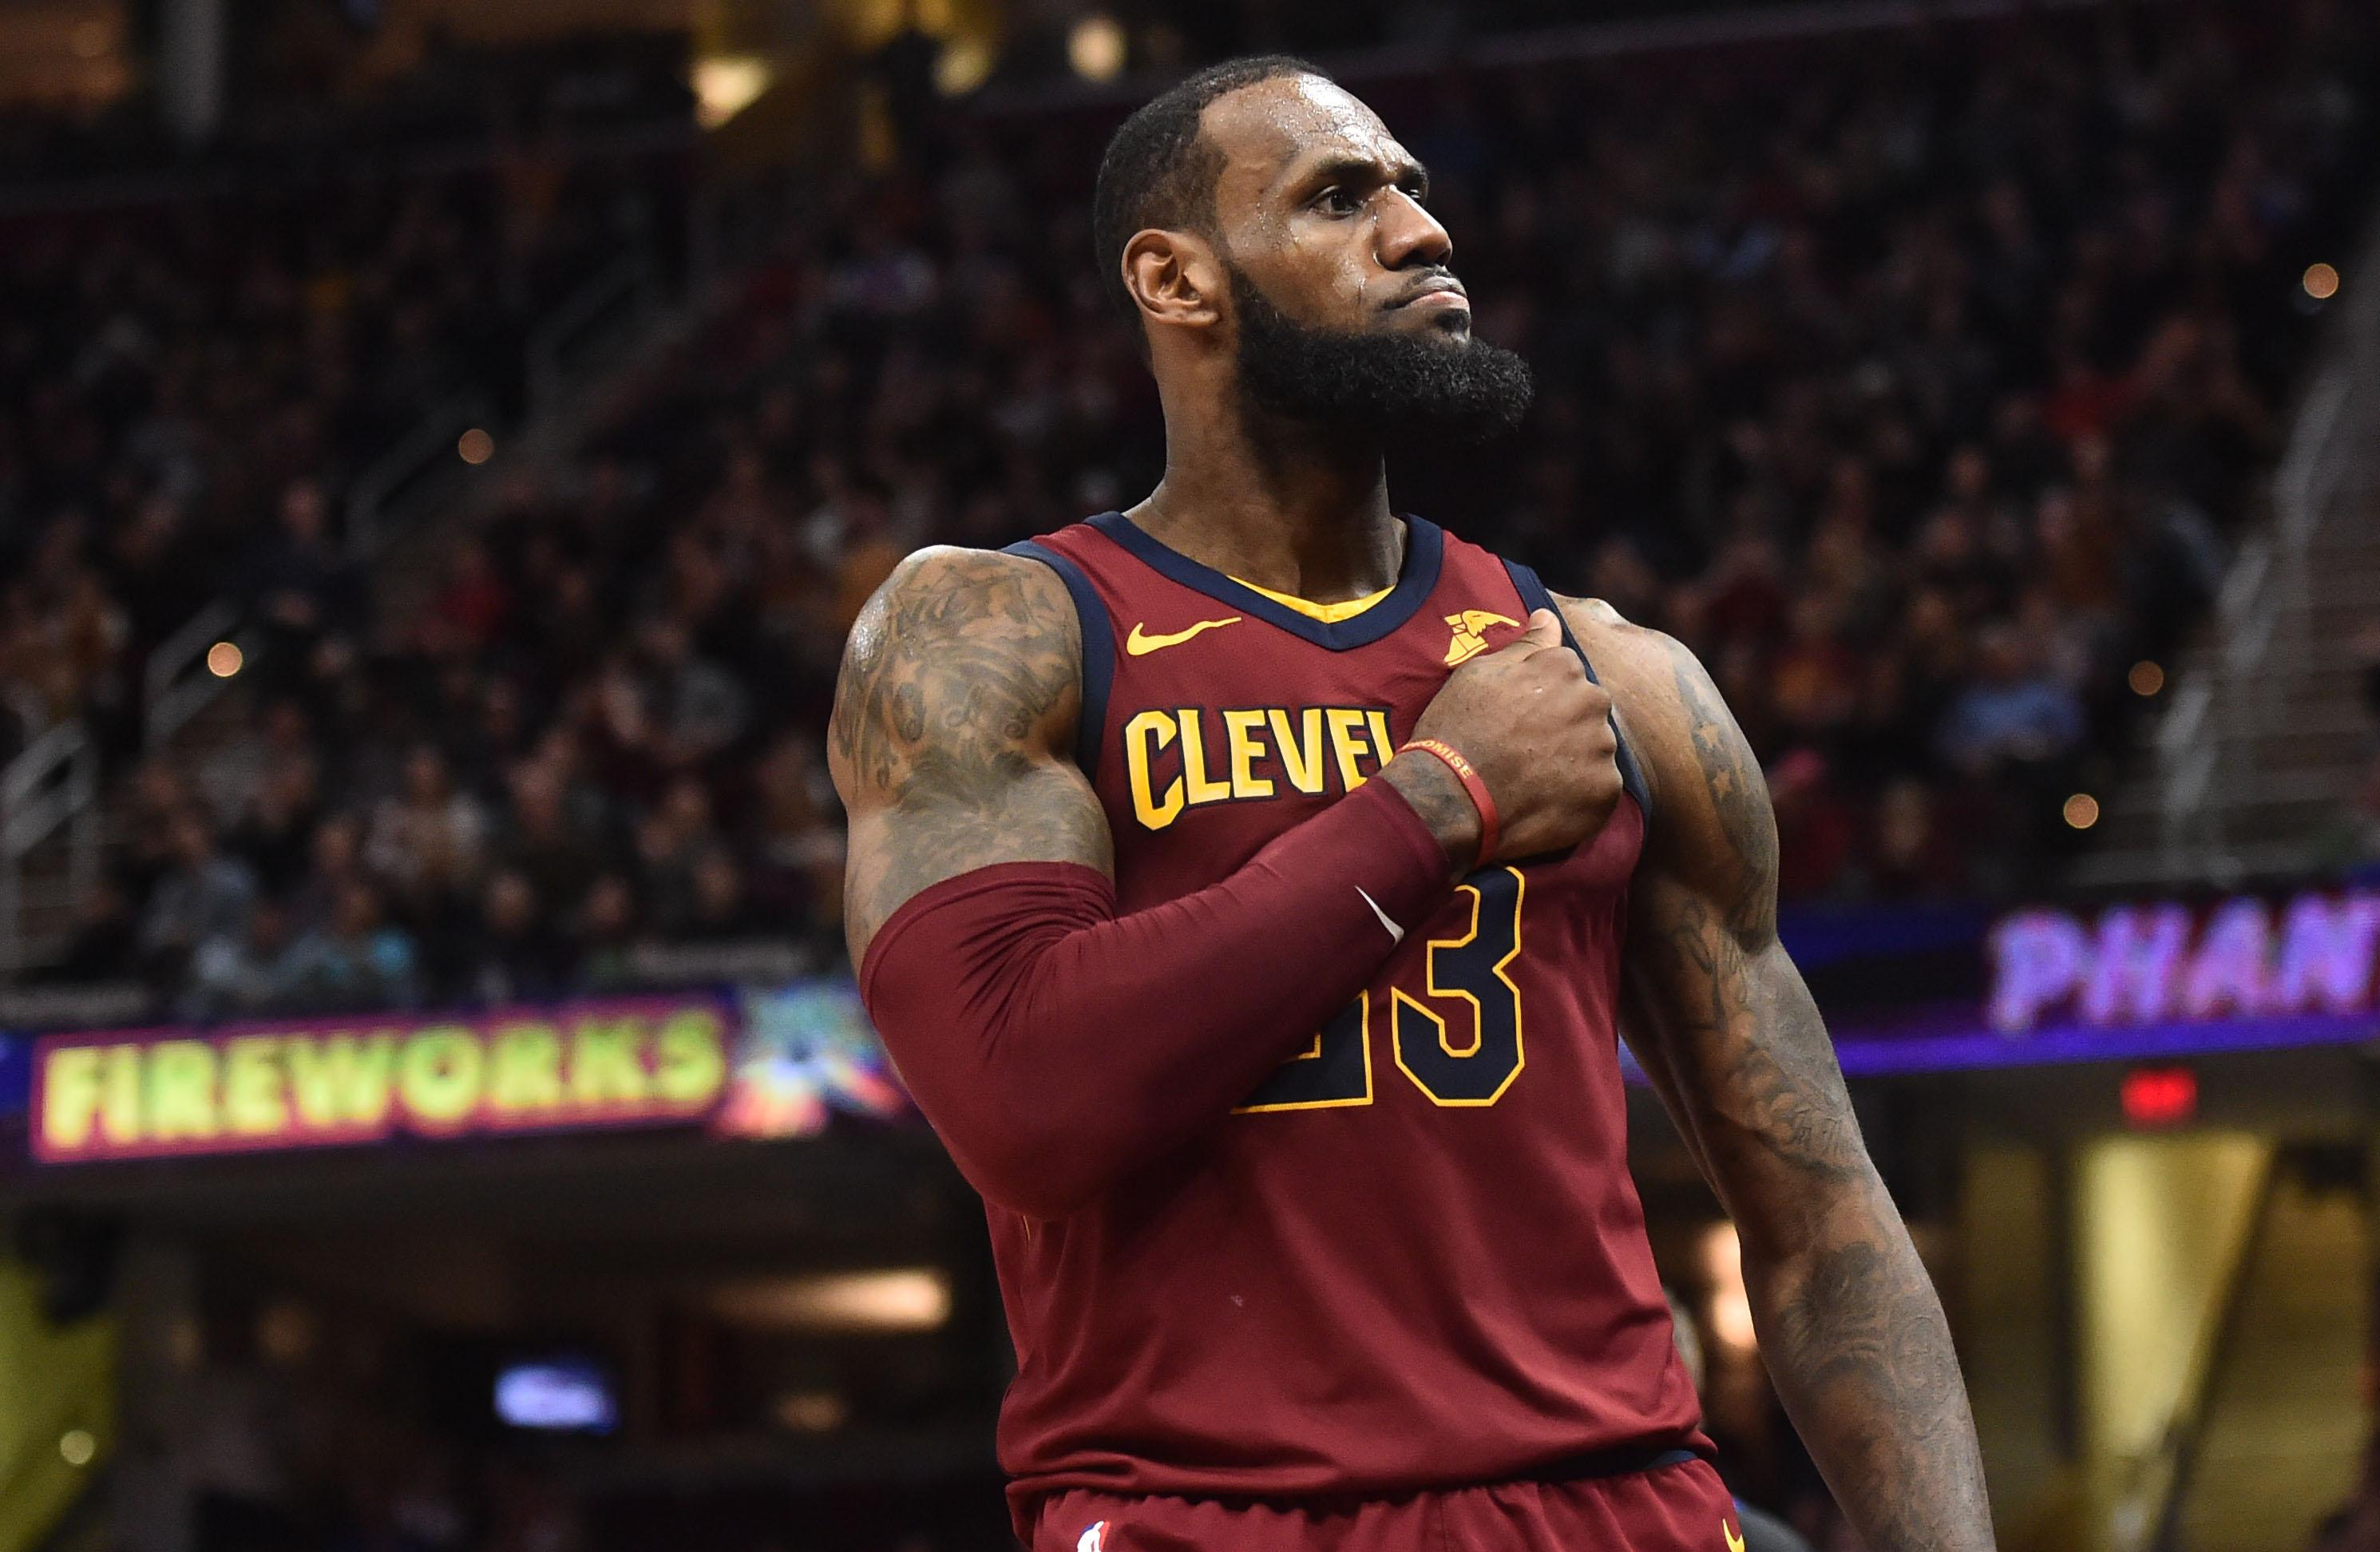 NBA star LeBron James is also part of Nike's advertising campaign this year